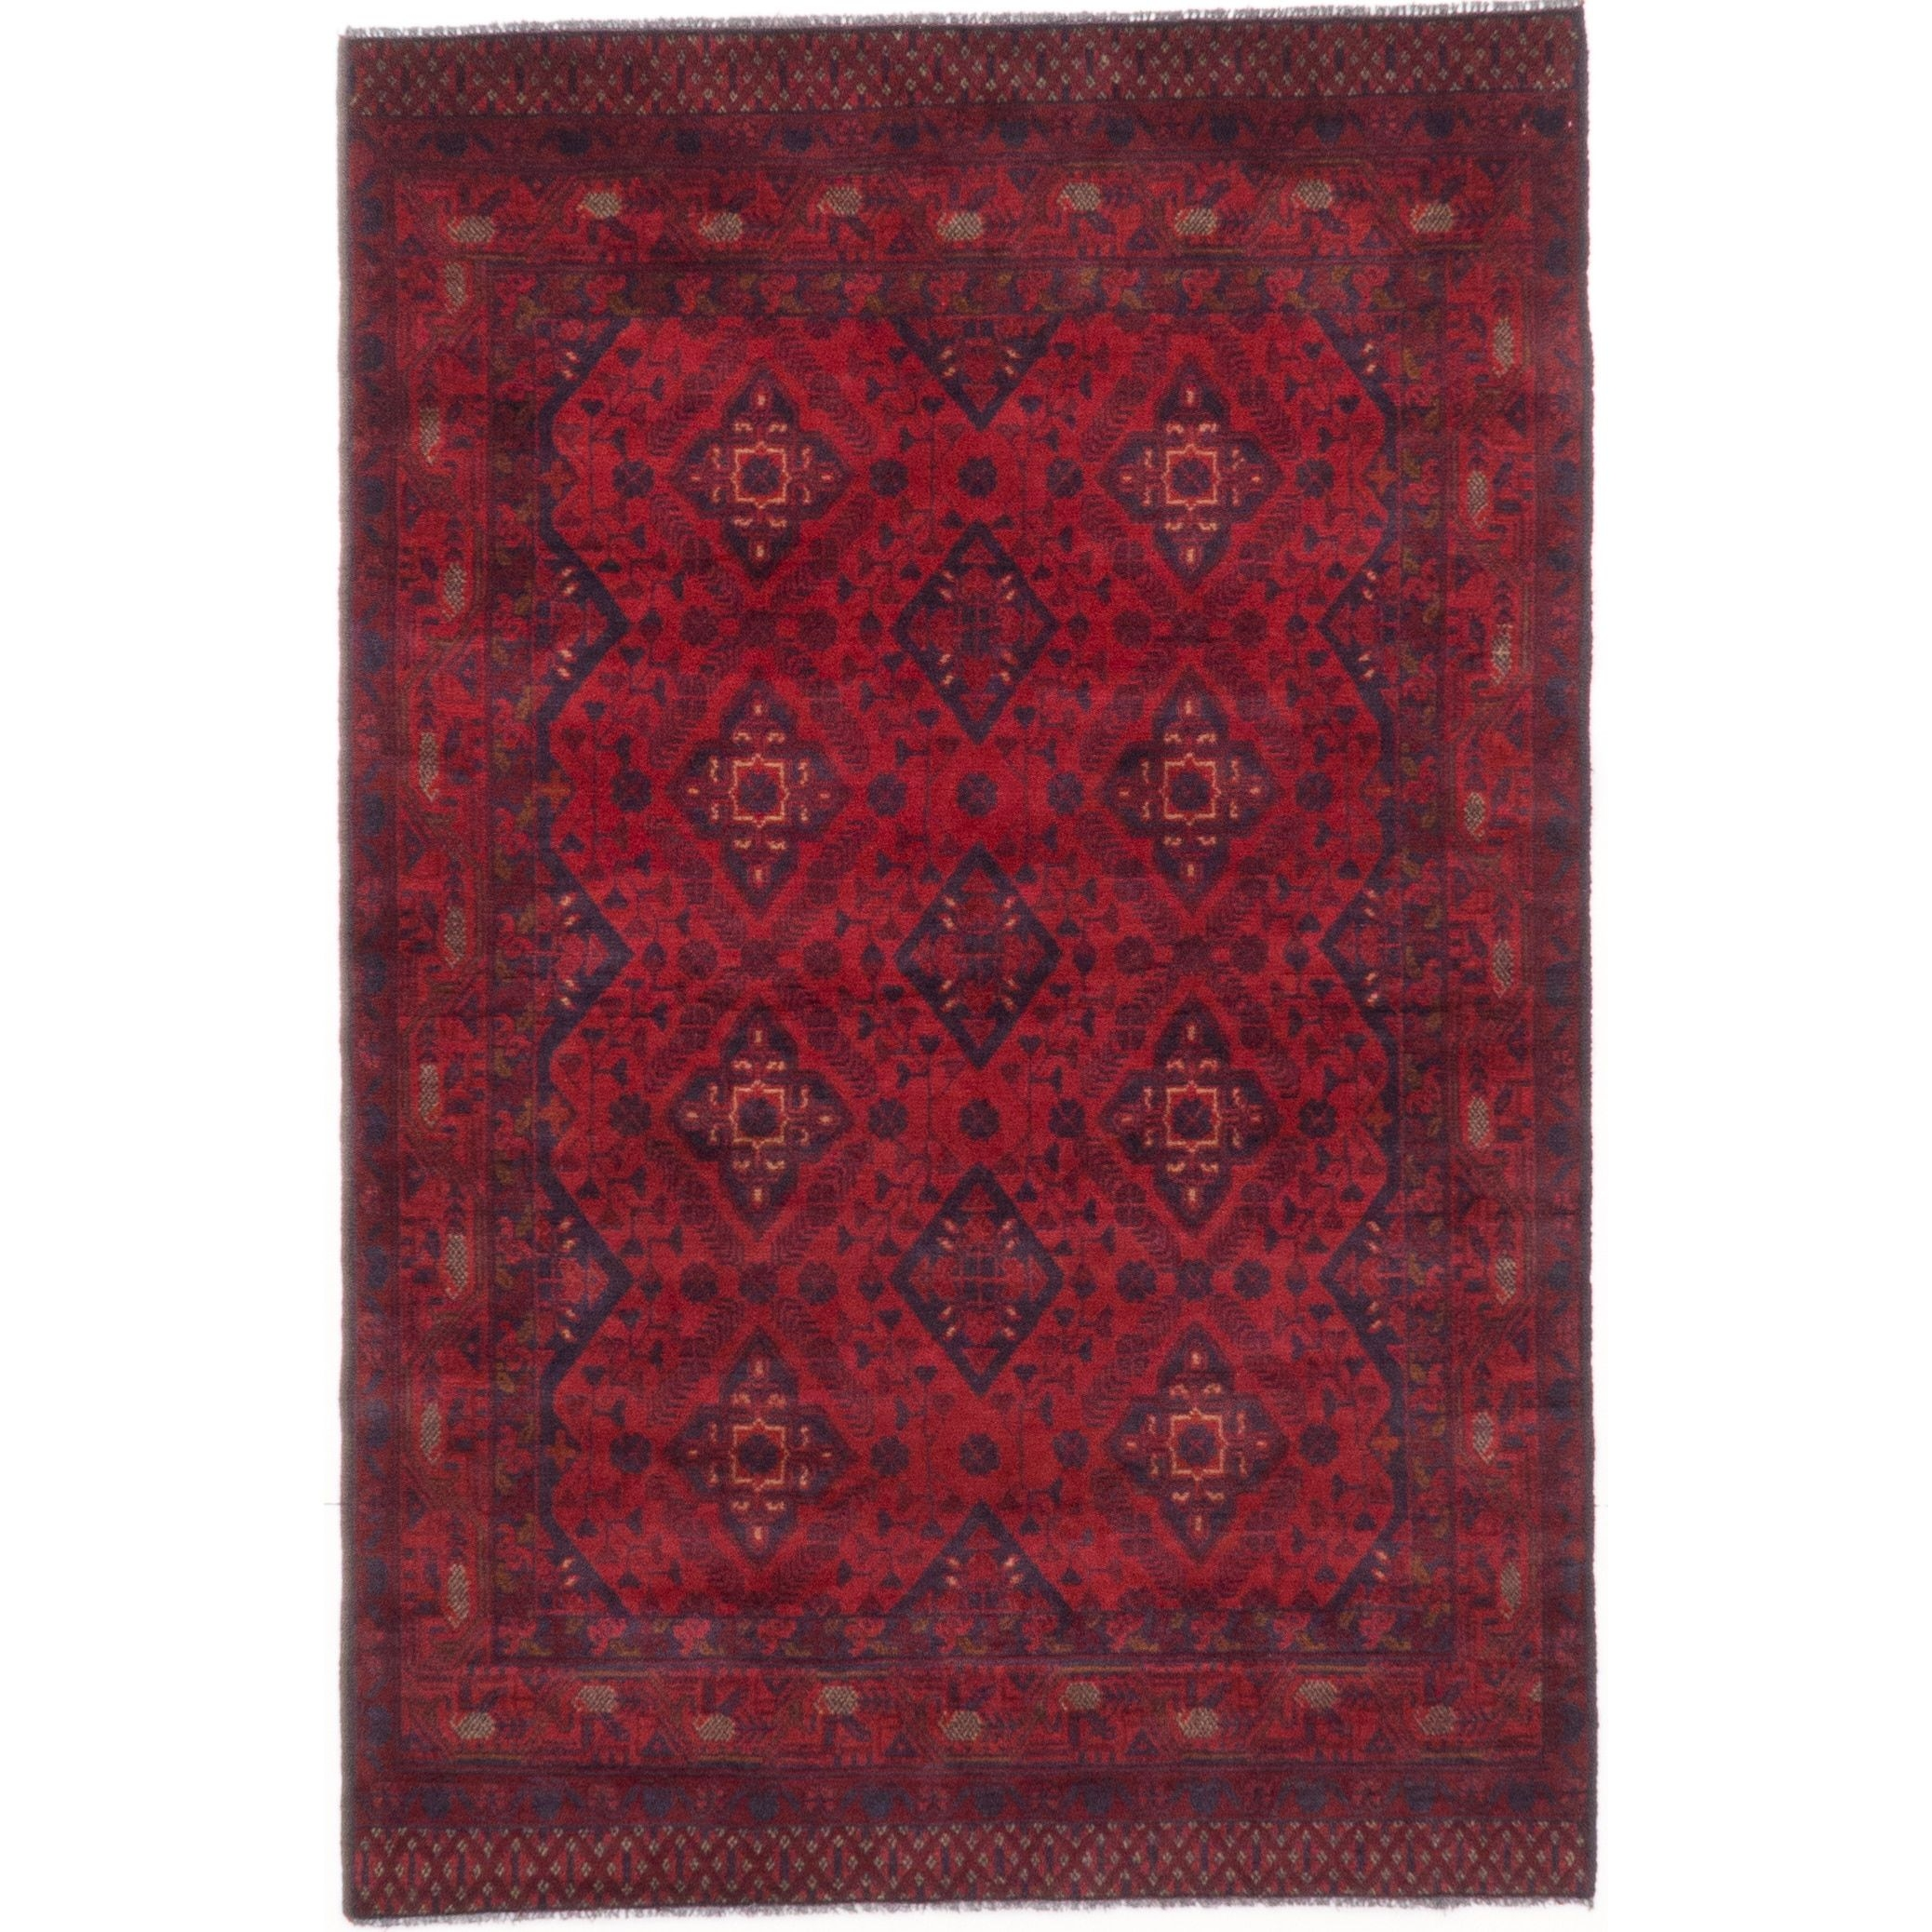 Ecarpetgallery Hand Knotted Finest Khal Mohammadi Red Wool Rug 4 Pertaining To Red Wool Rugs (Image 3 of 15)